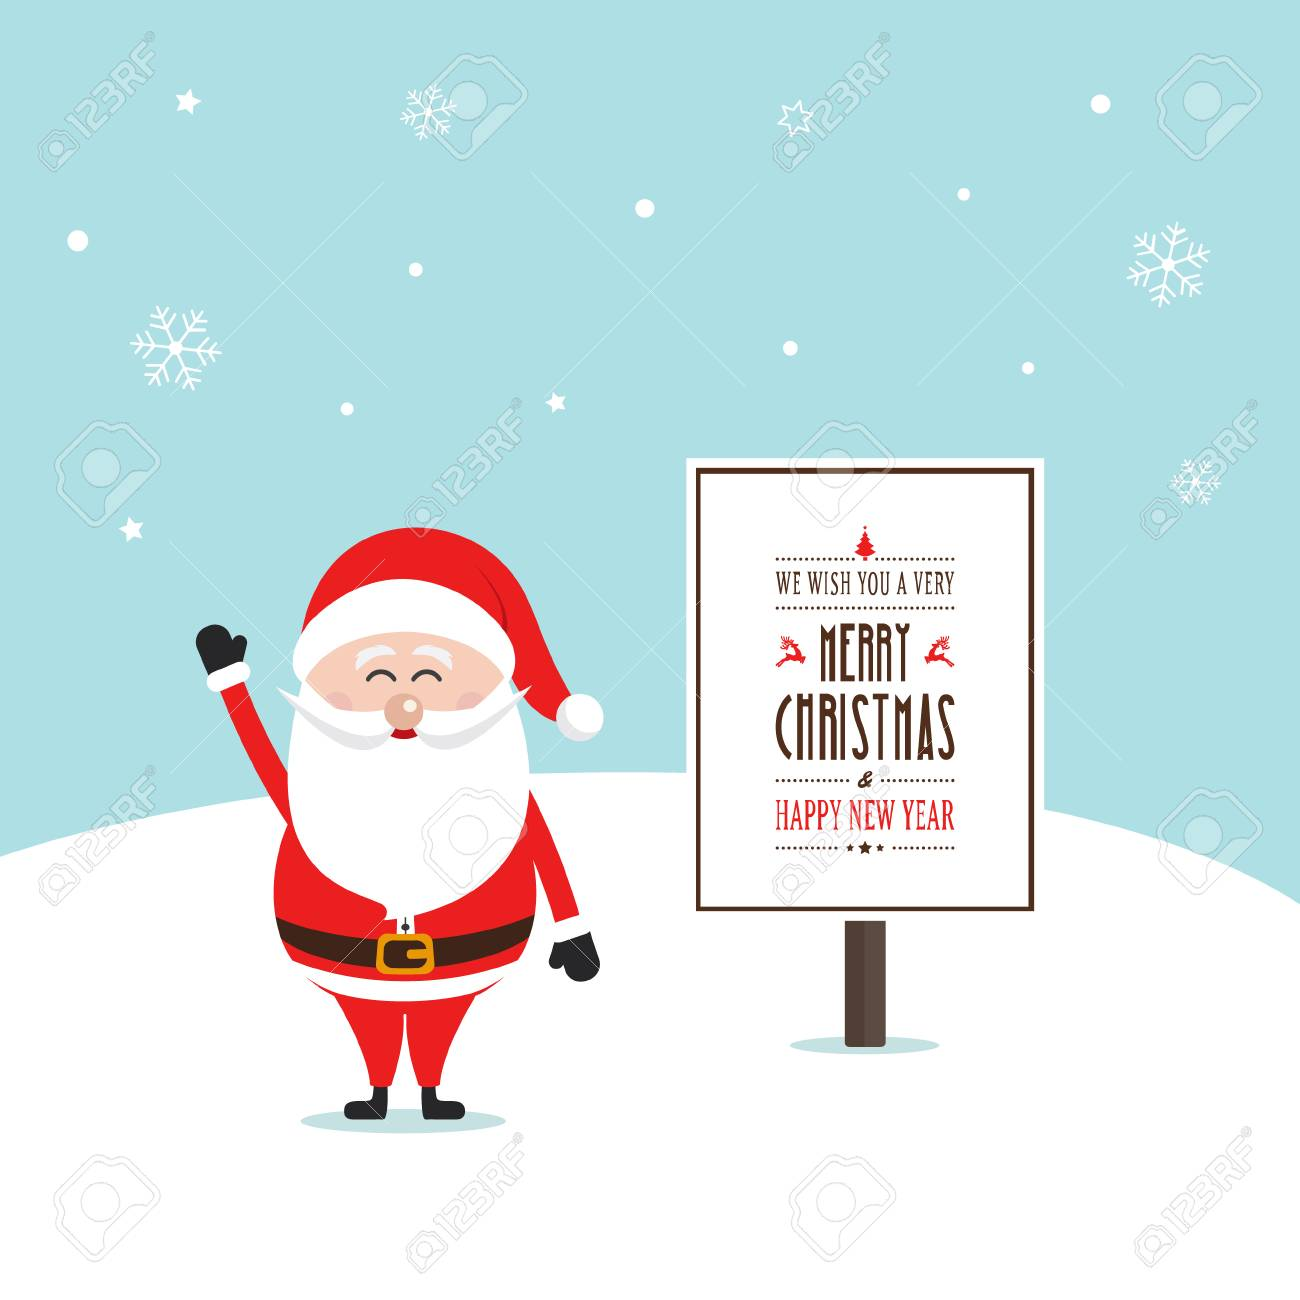 santa claus happy wave merry christmas sign royalty free cliparts